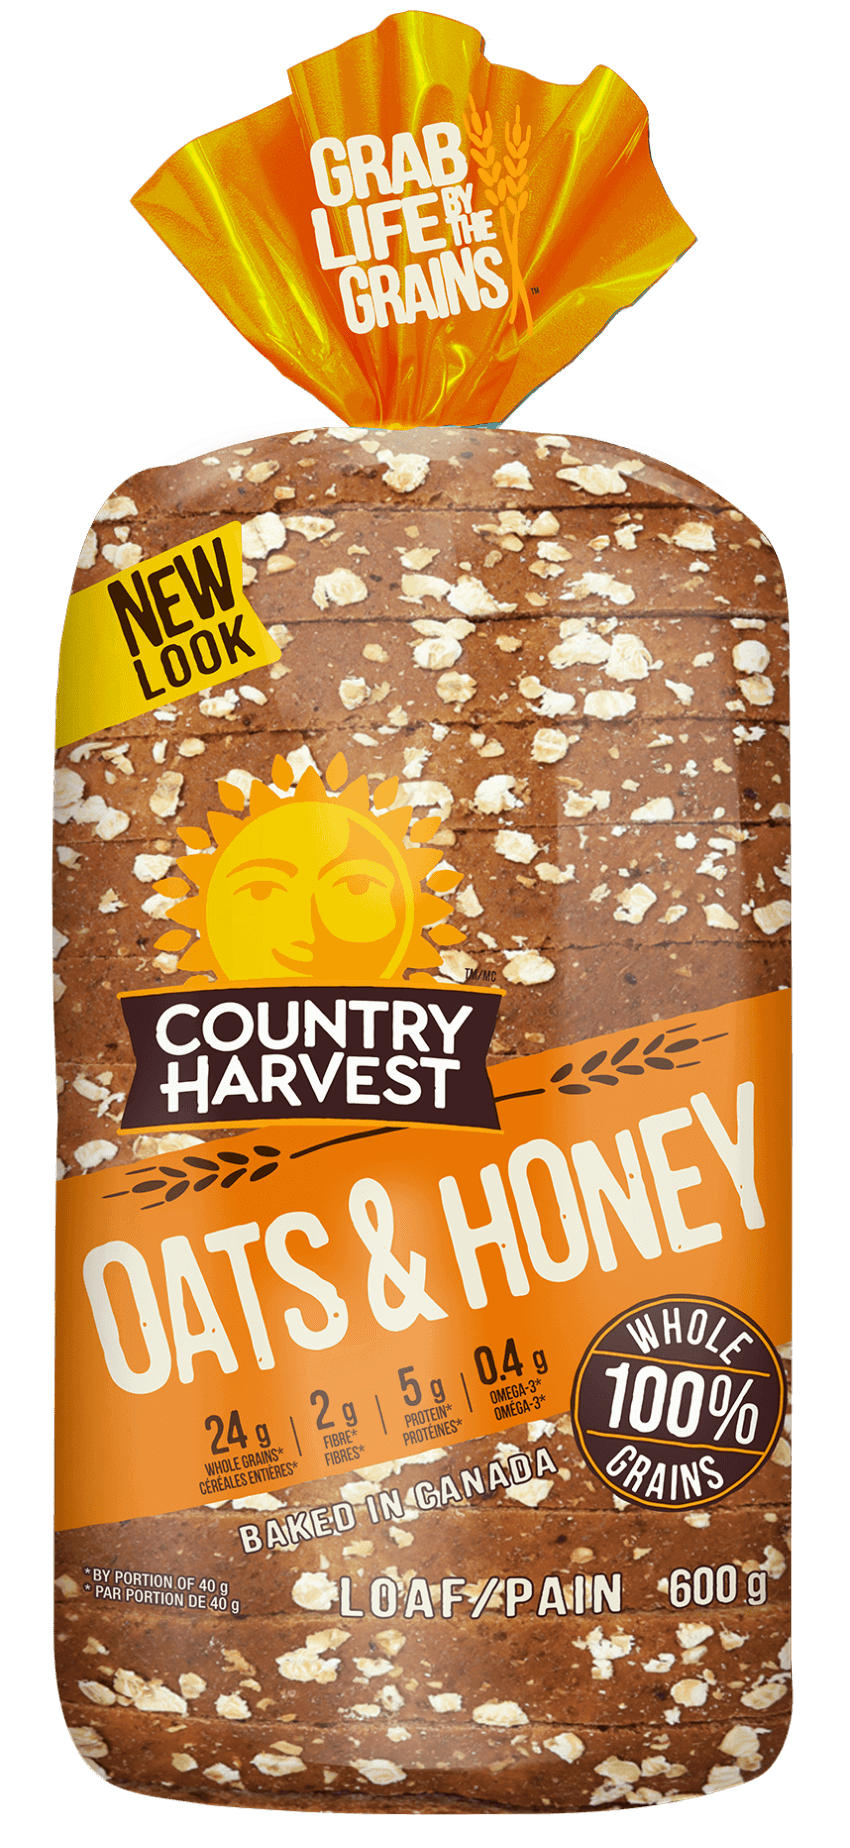 Country-Harvest-Oats-and-Honey-Pack